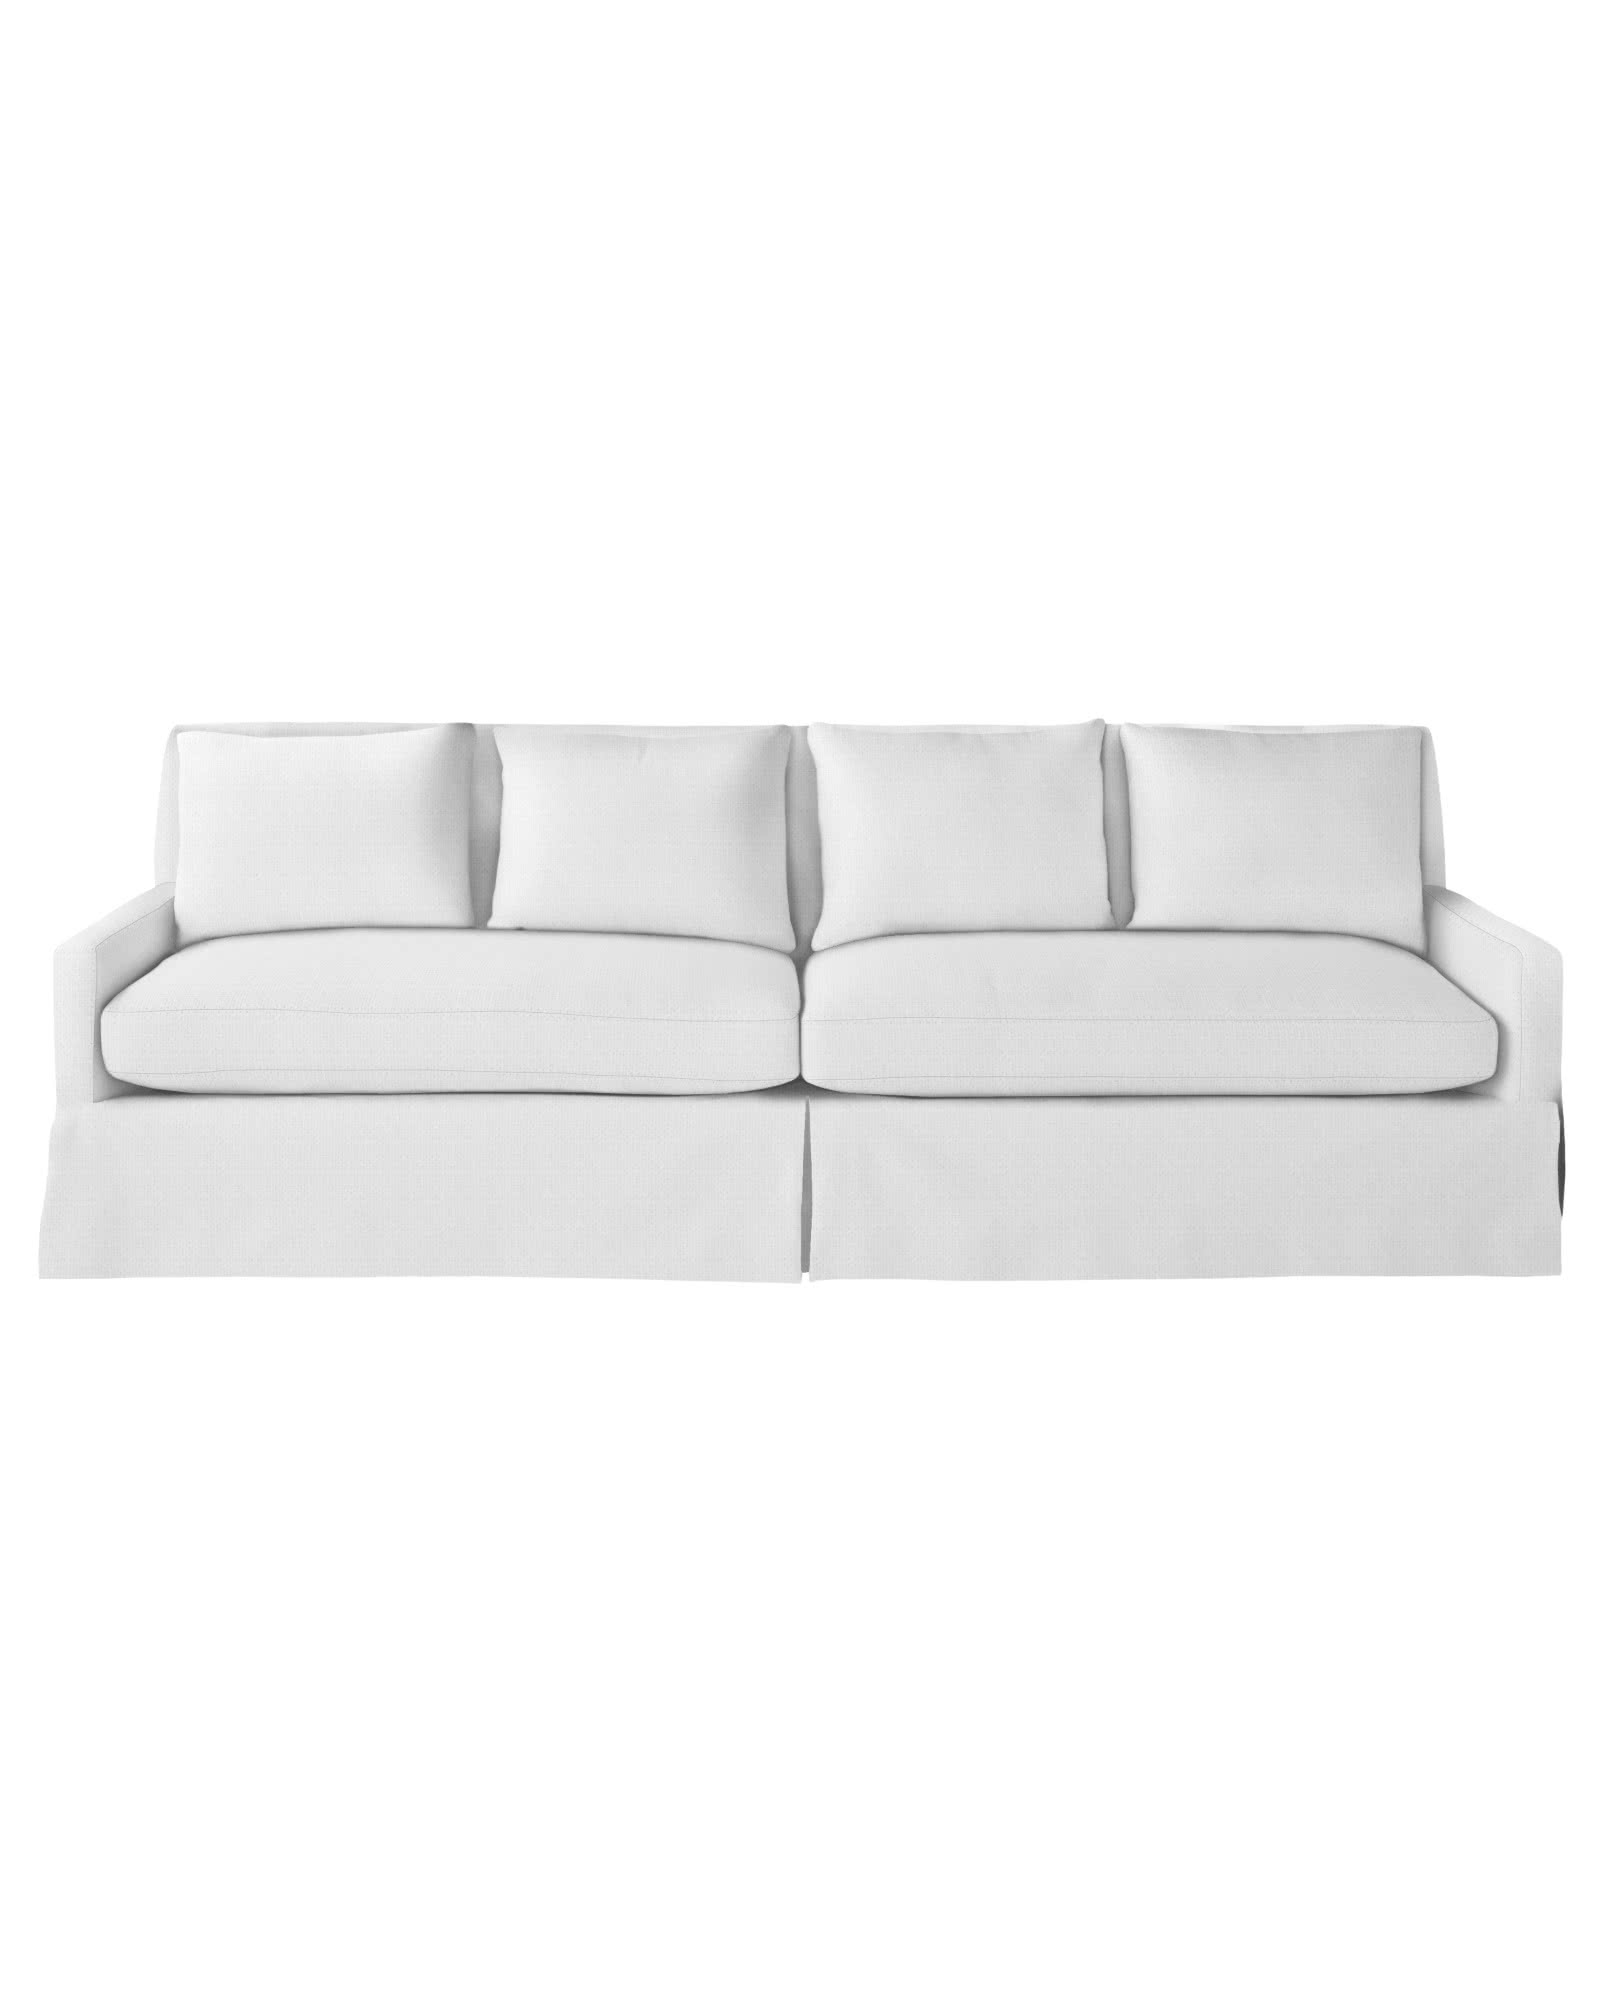 Jamieson Sofa - Skirted